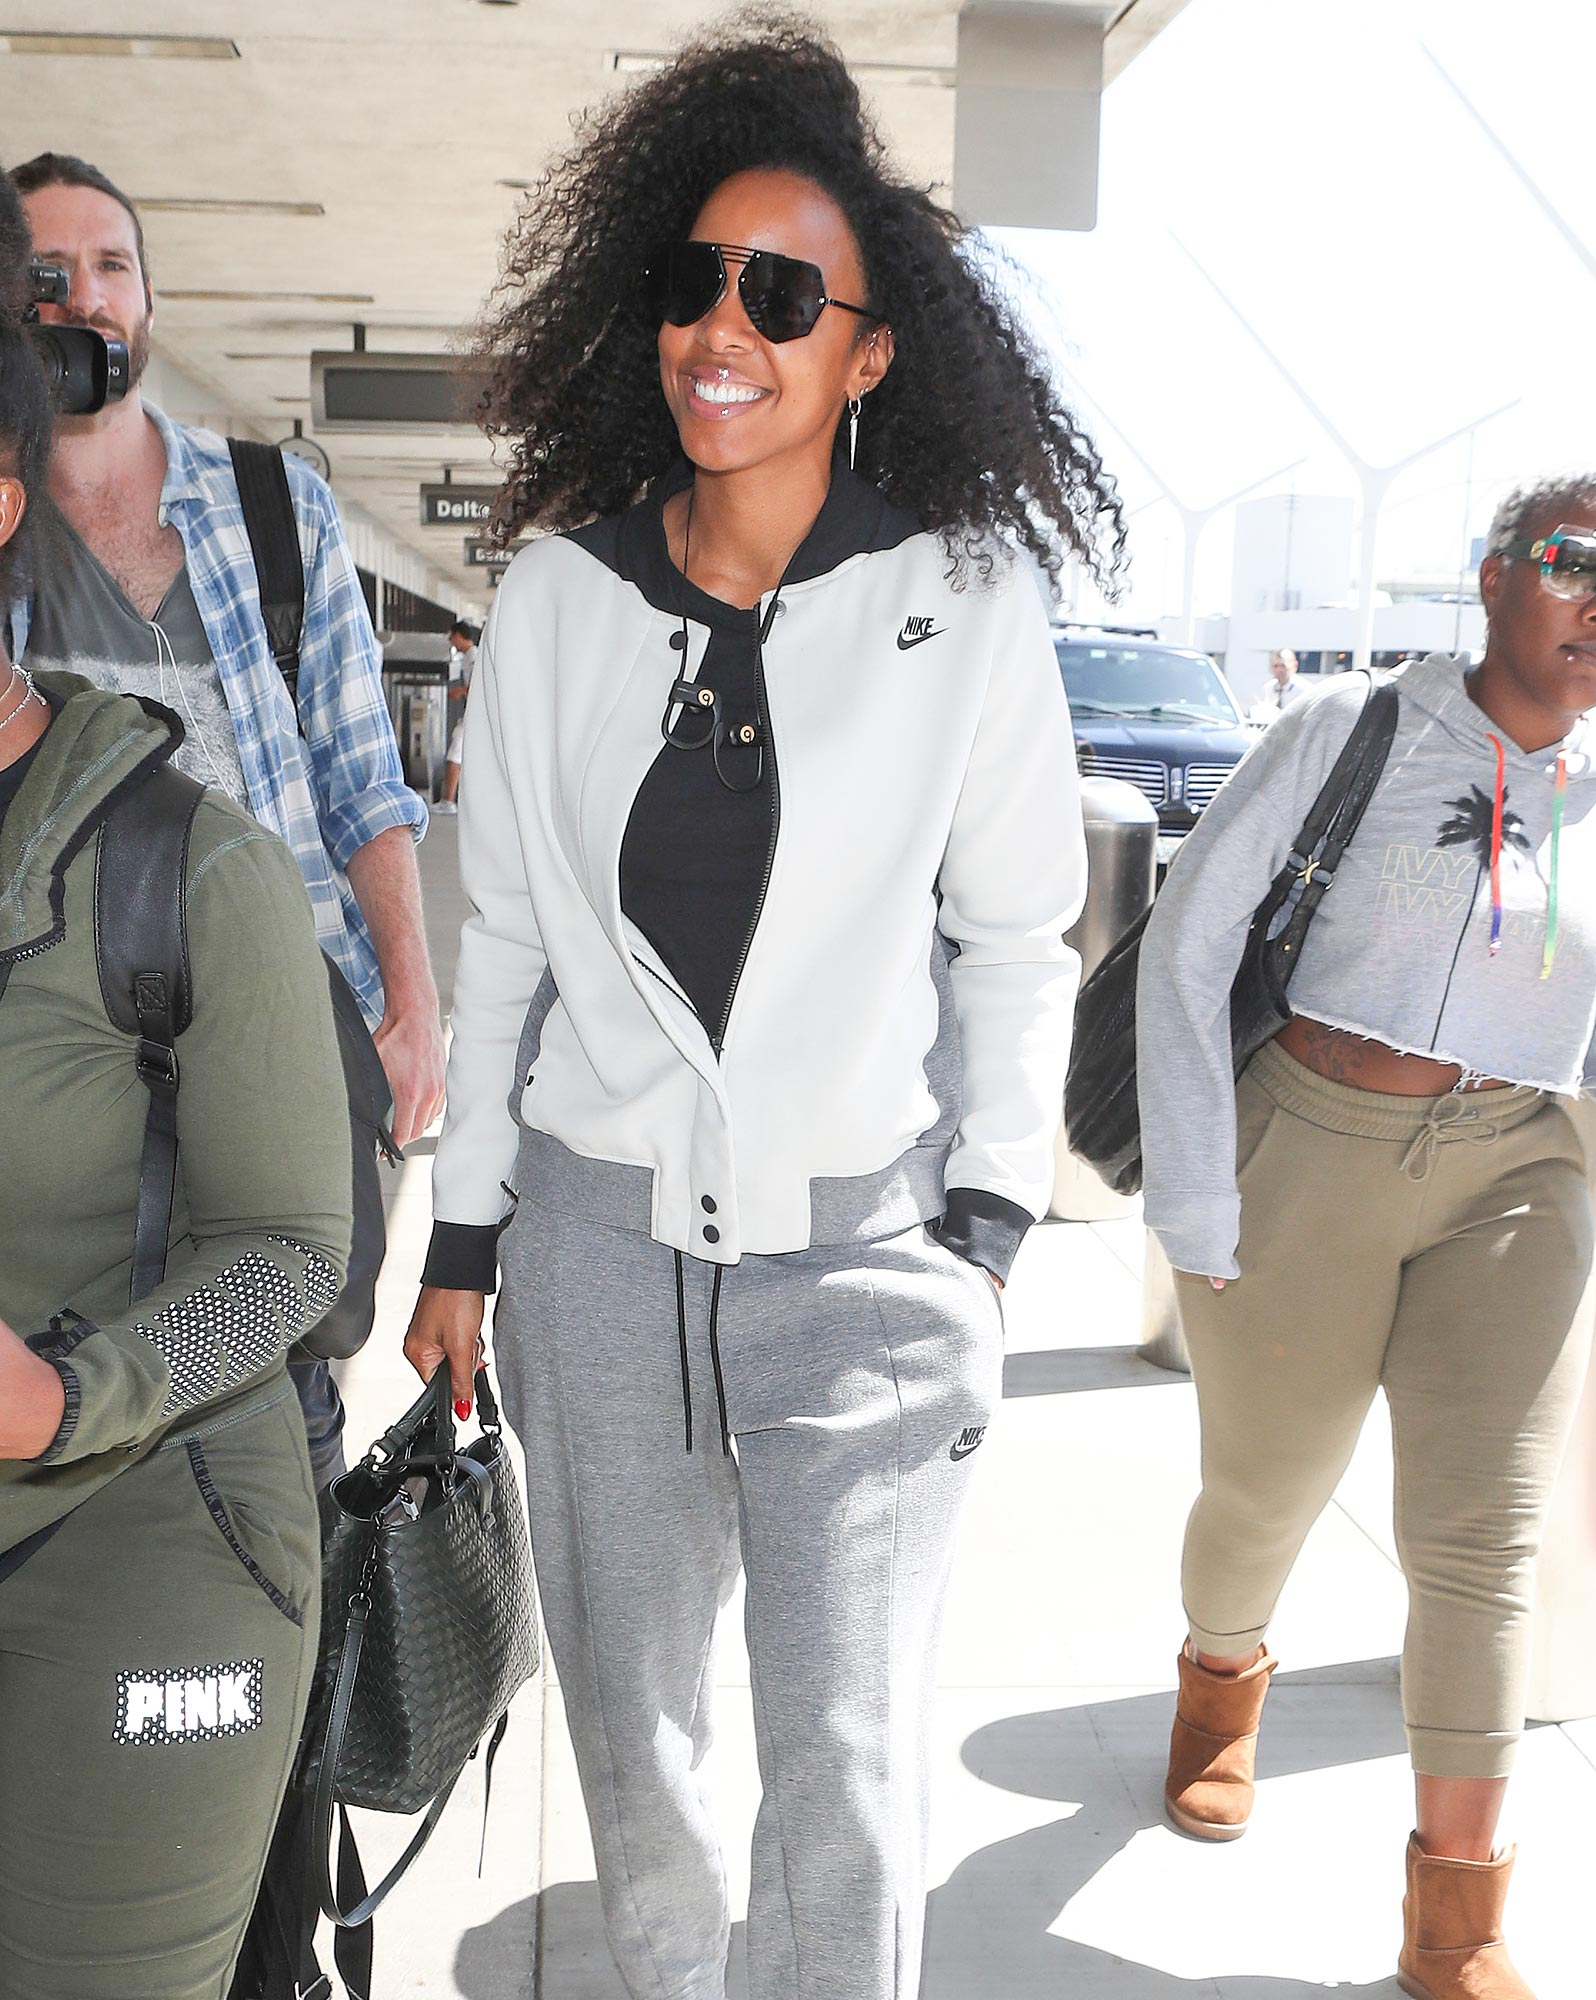 Kelly Rowland is Pictured Arriving at LAX Airport in Los Angeles.